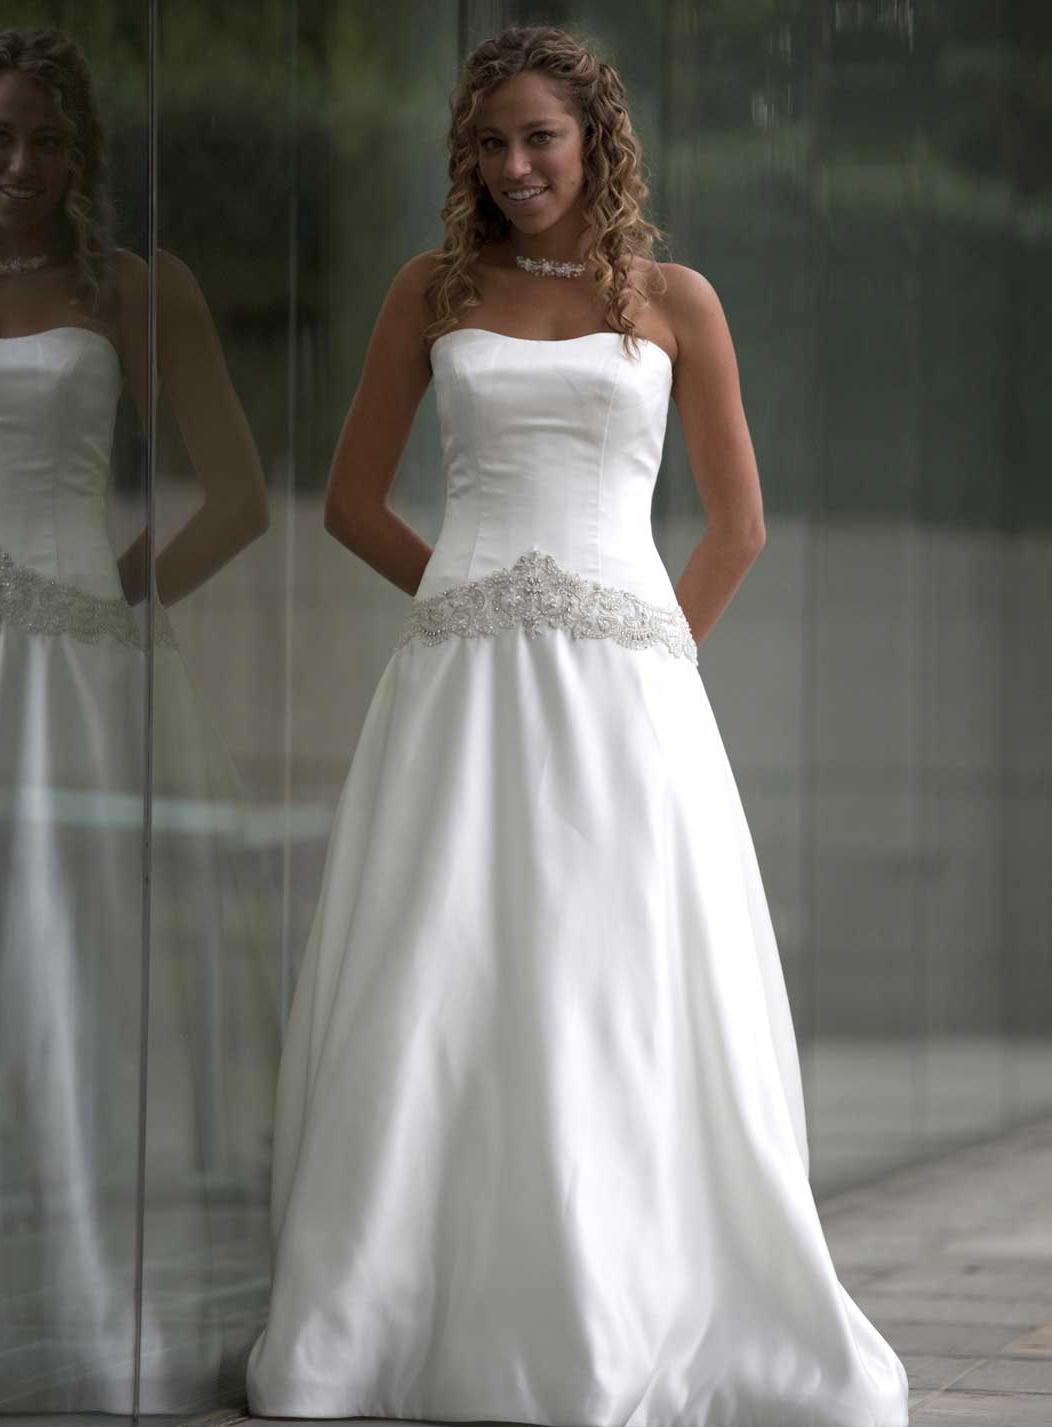 Satin strapless wedding gowns